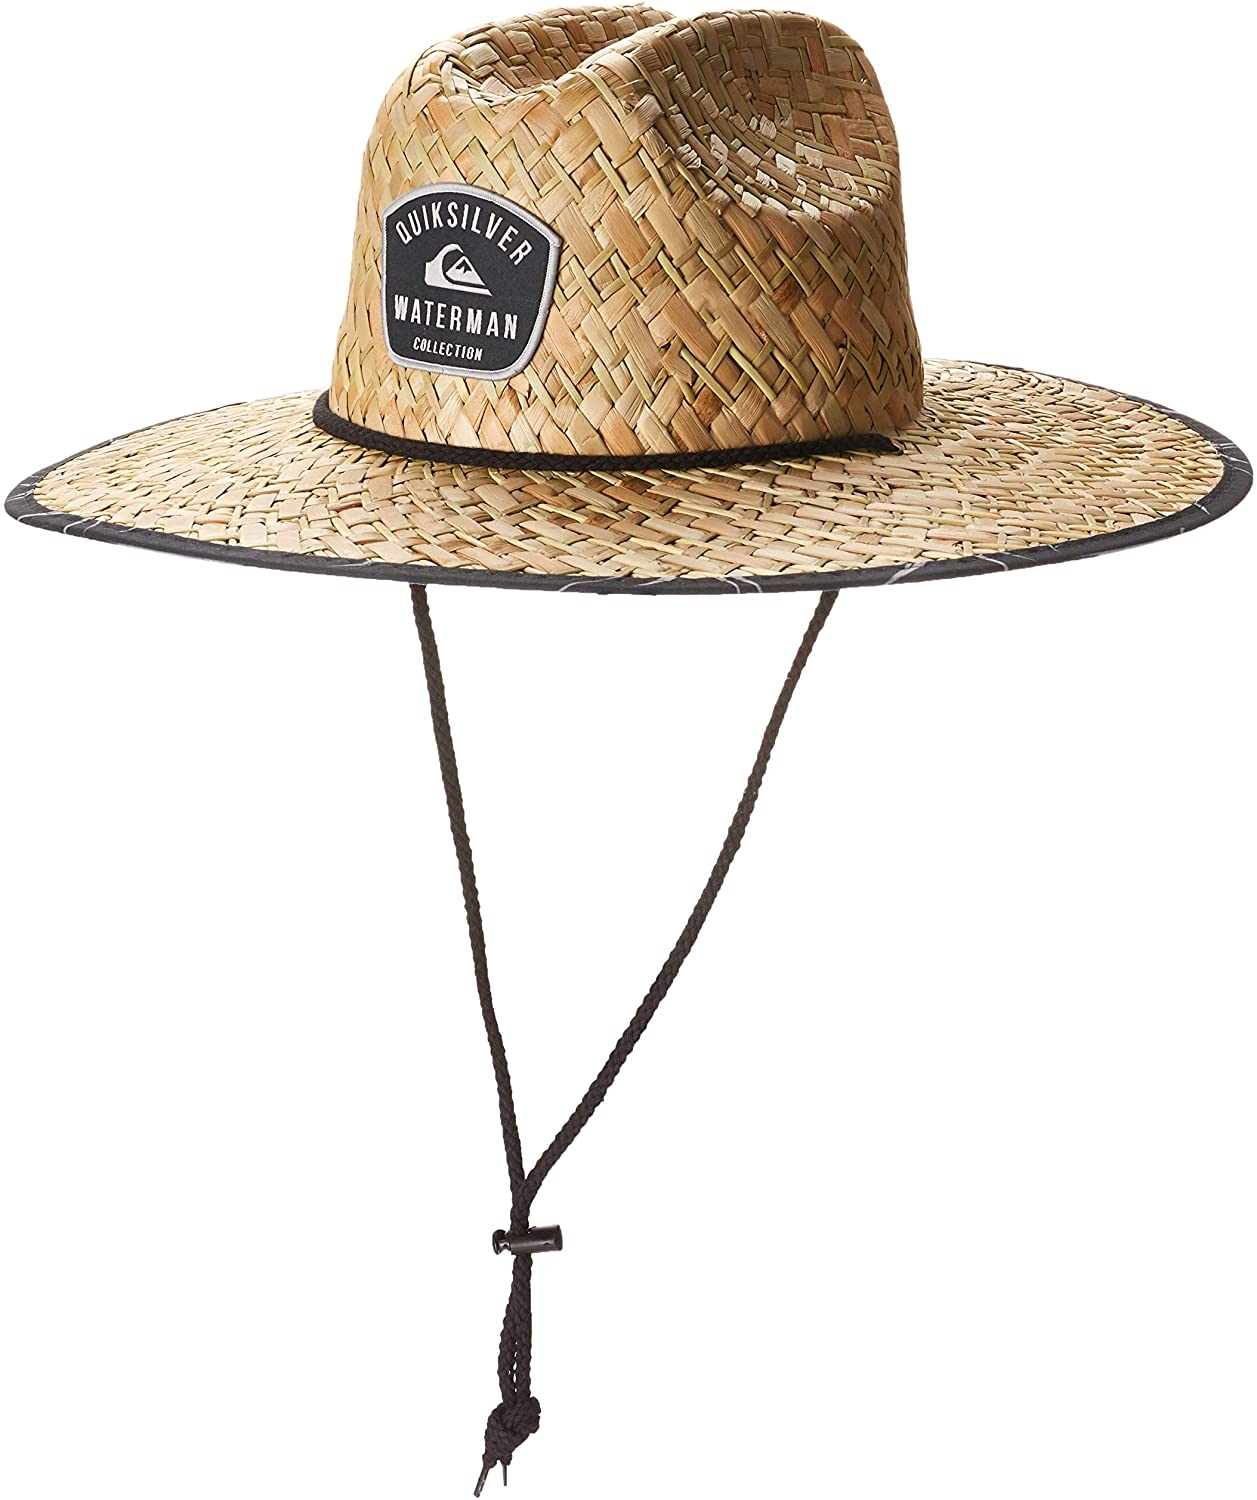 Quiksilver Men's Outsider Waterman Sun Protection Straw Lifeguard Hat : Clothing, Shoes & Jewelry